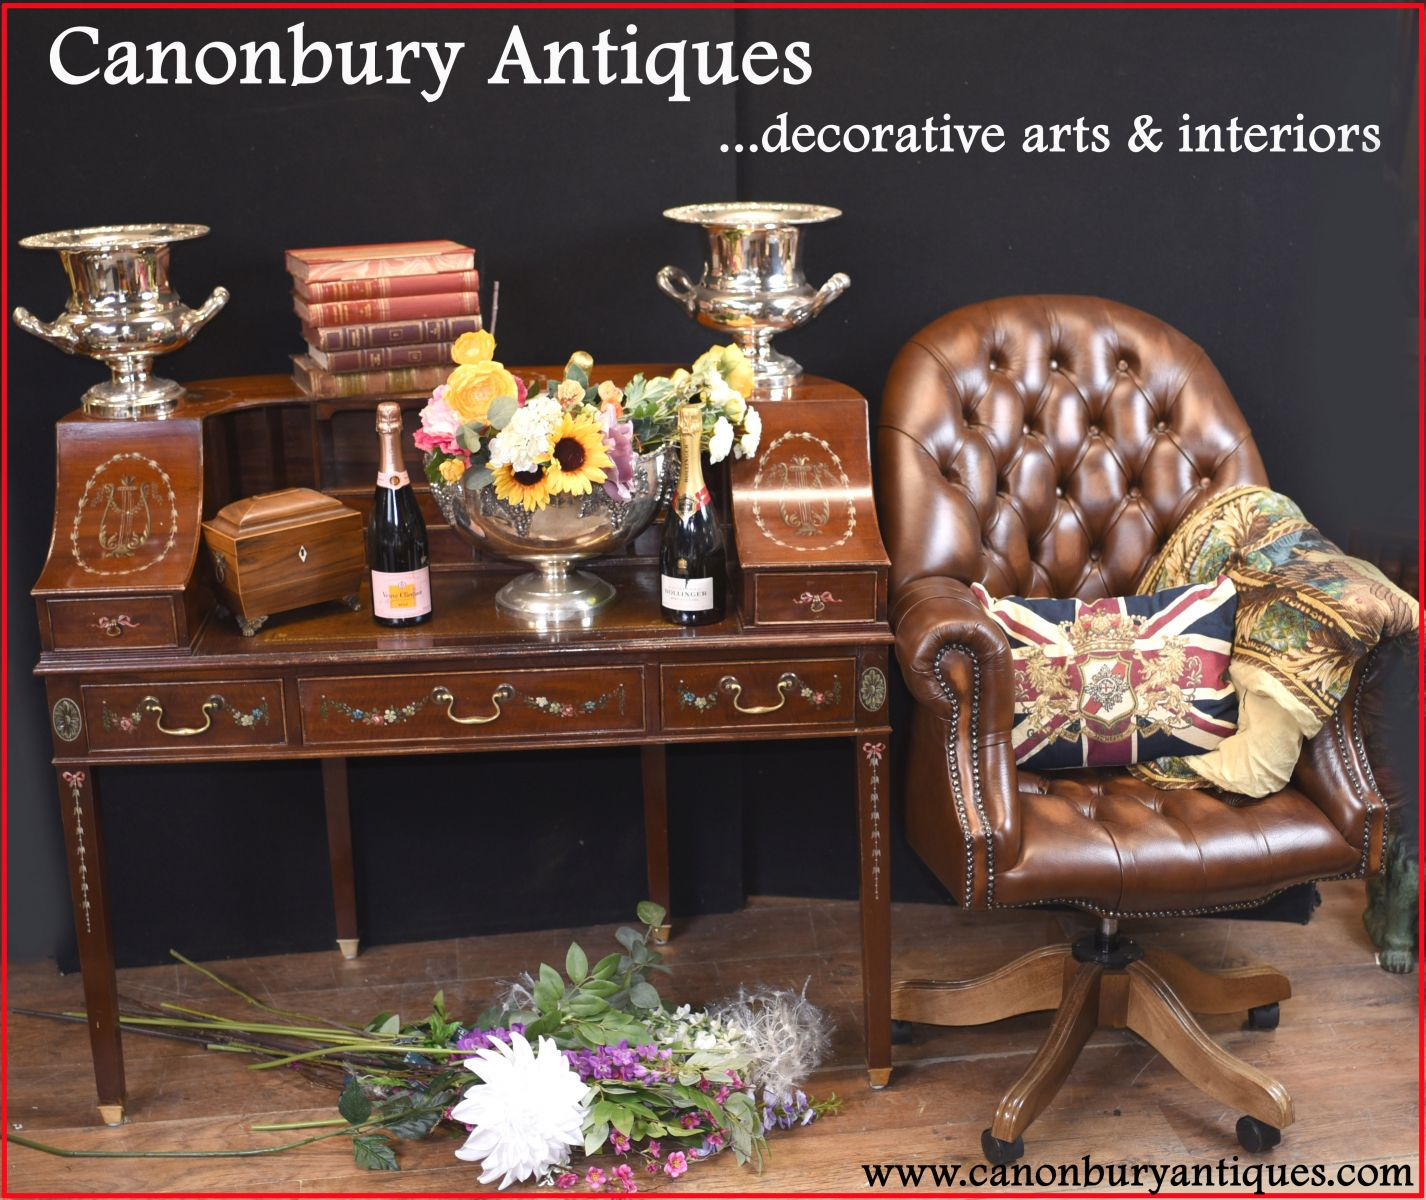 Canonbury Antiques - shop our Latest Acquisitions